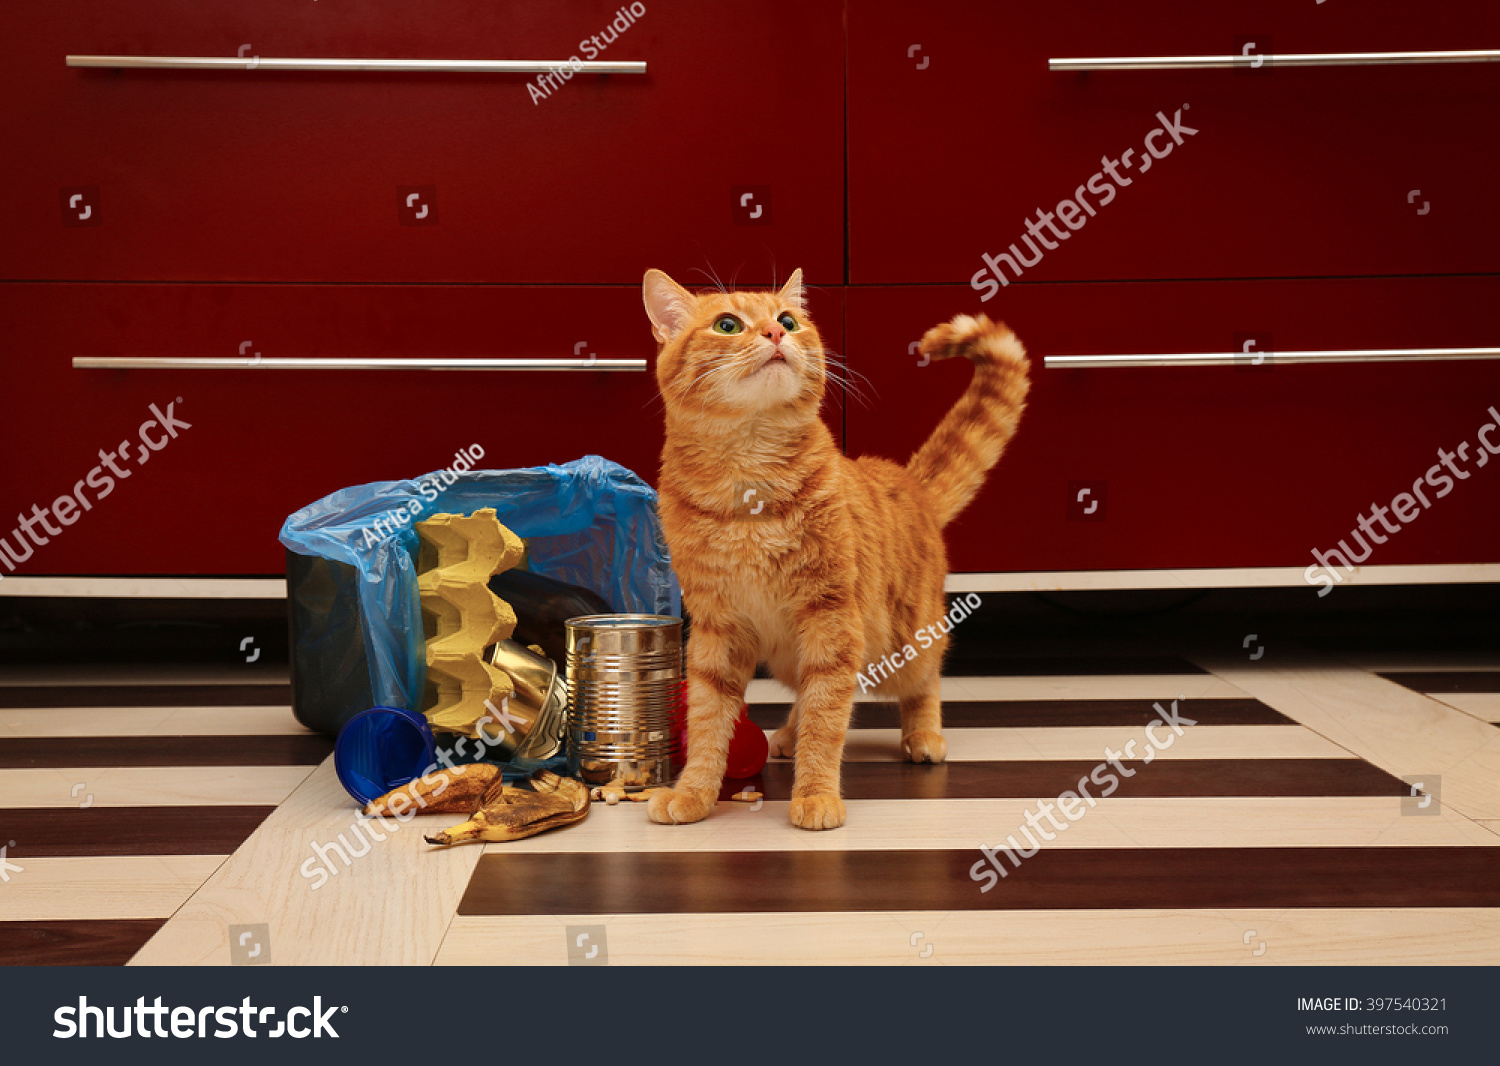 red cat near full inverted garbage basket on kitchen floor stock